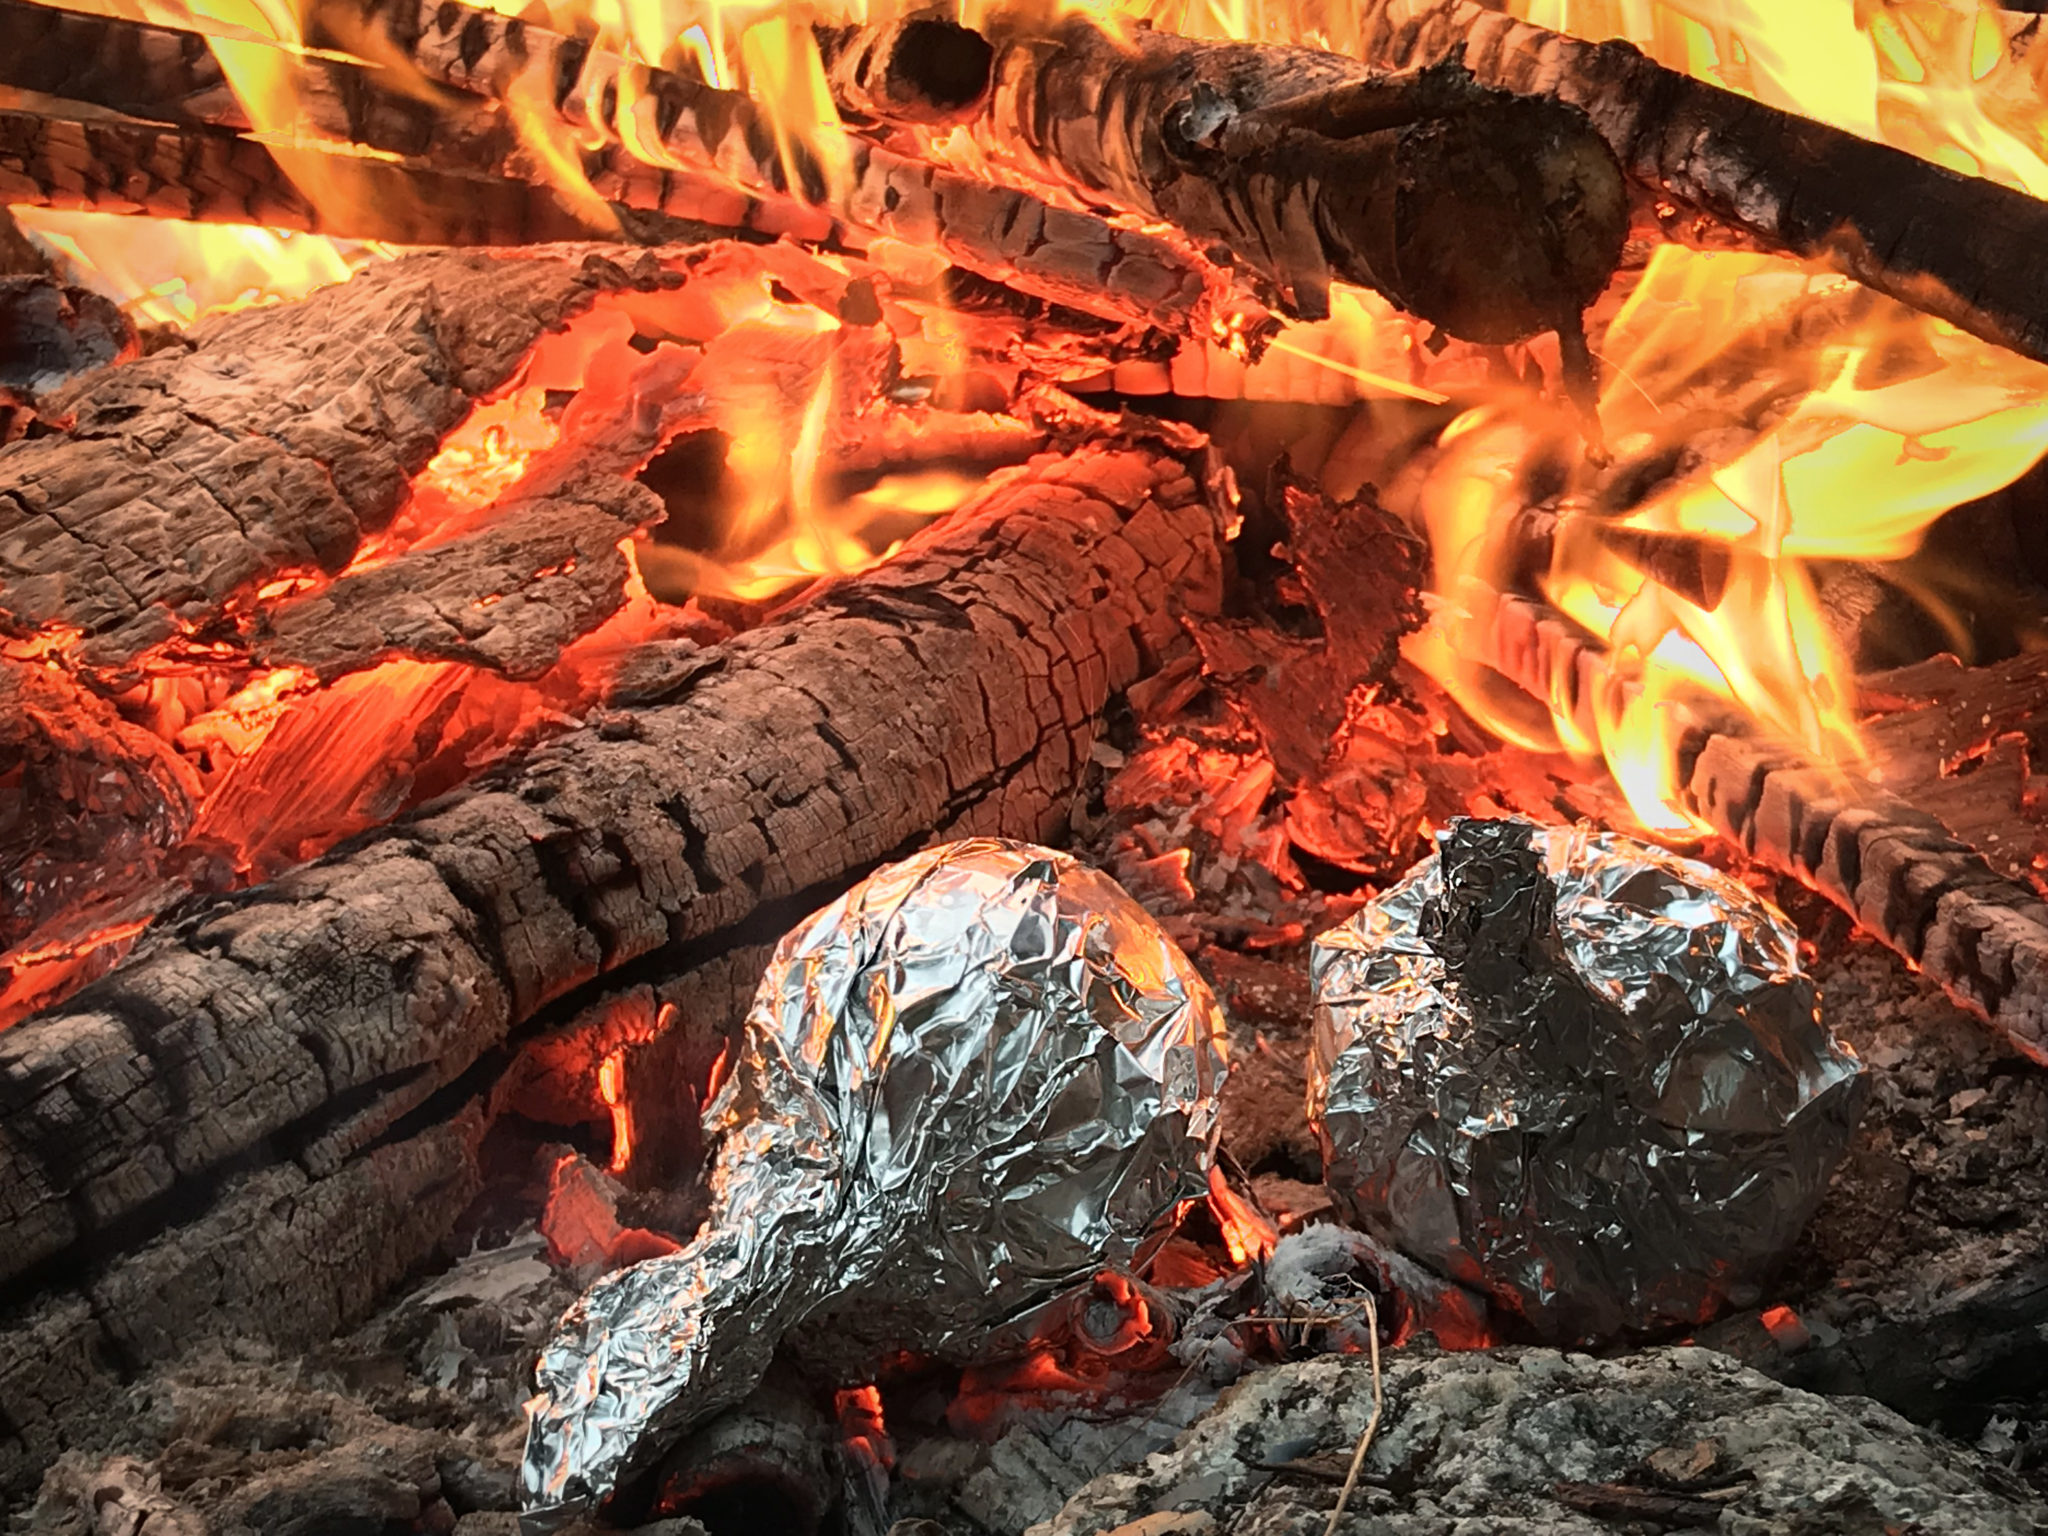 How to make campfire baked apples